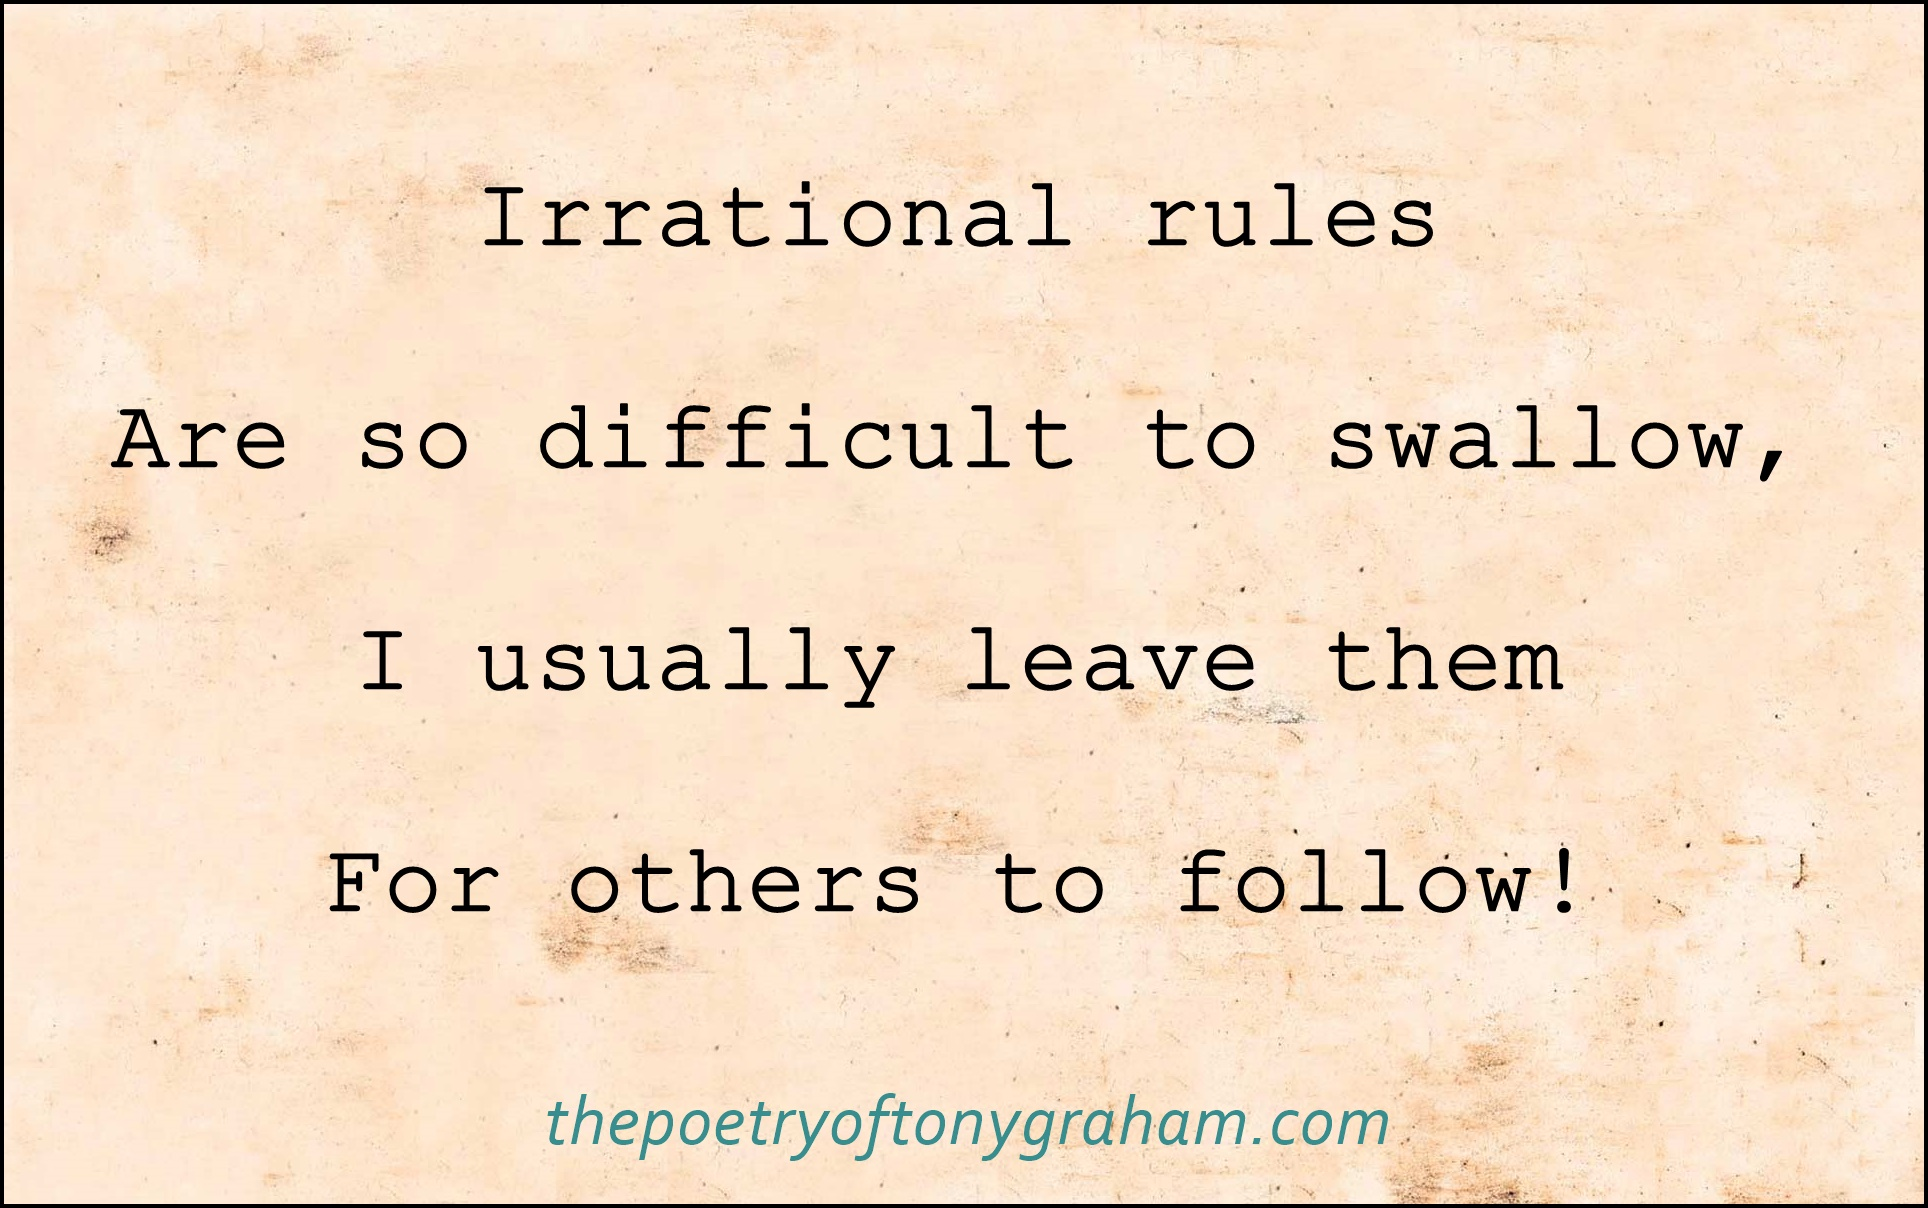 TPOTG Irrational Rules 01